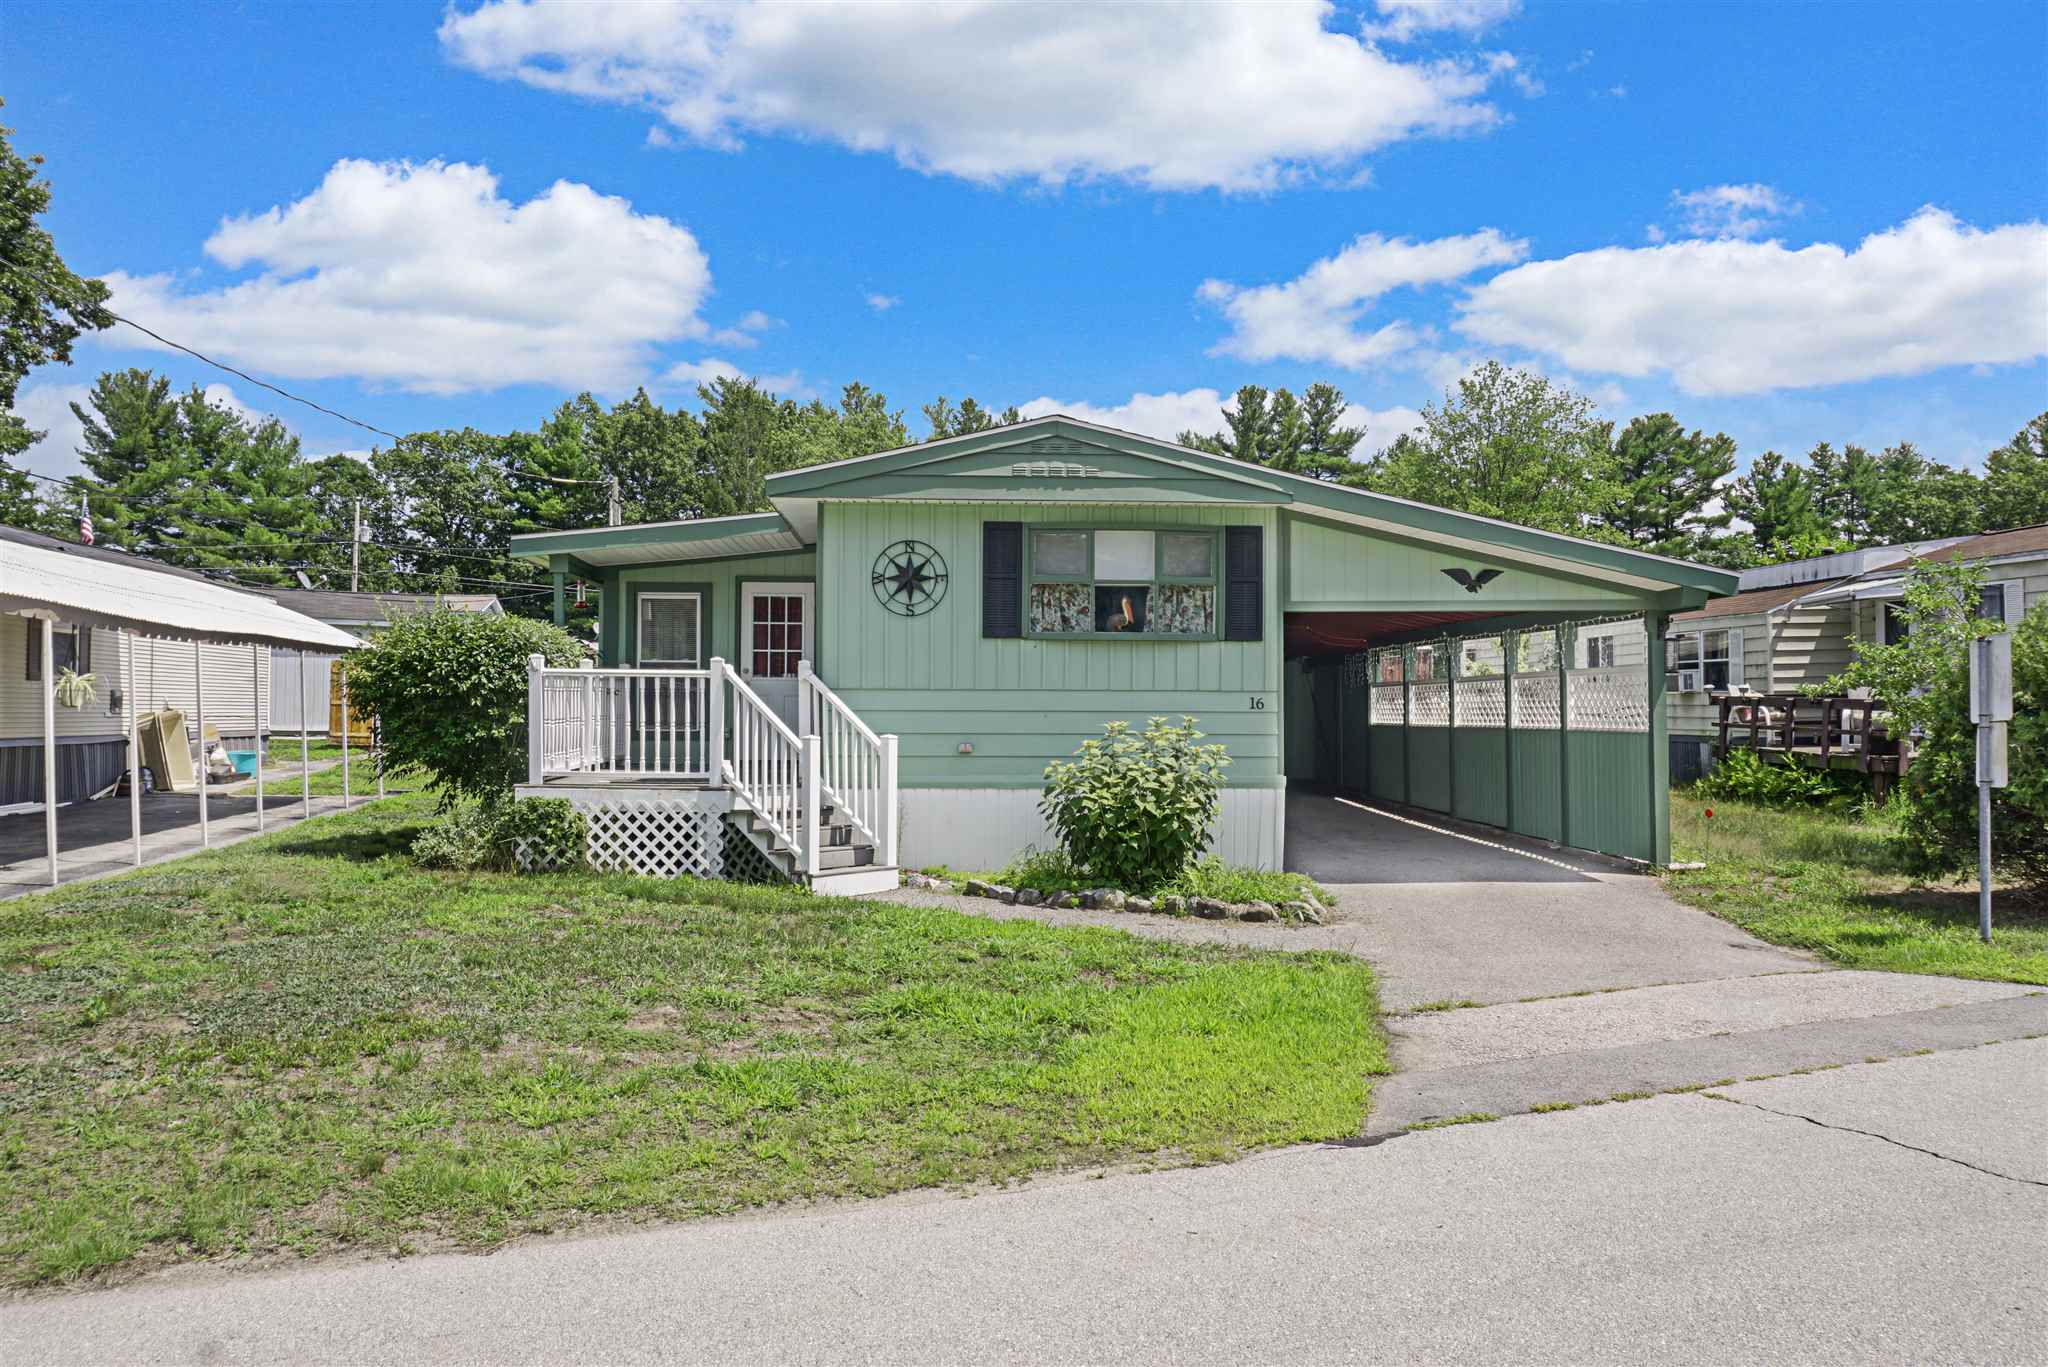 MLS 4819876: 16 Cottonwood Lane, Merrimack NH